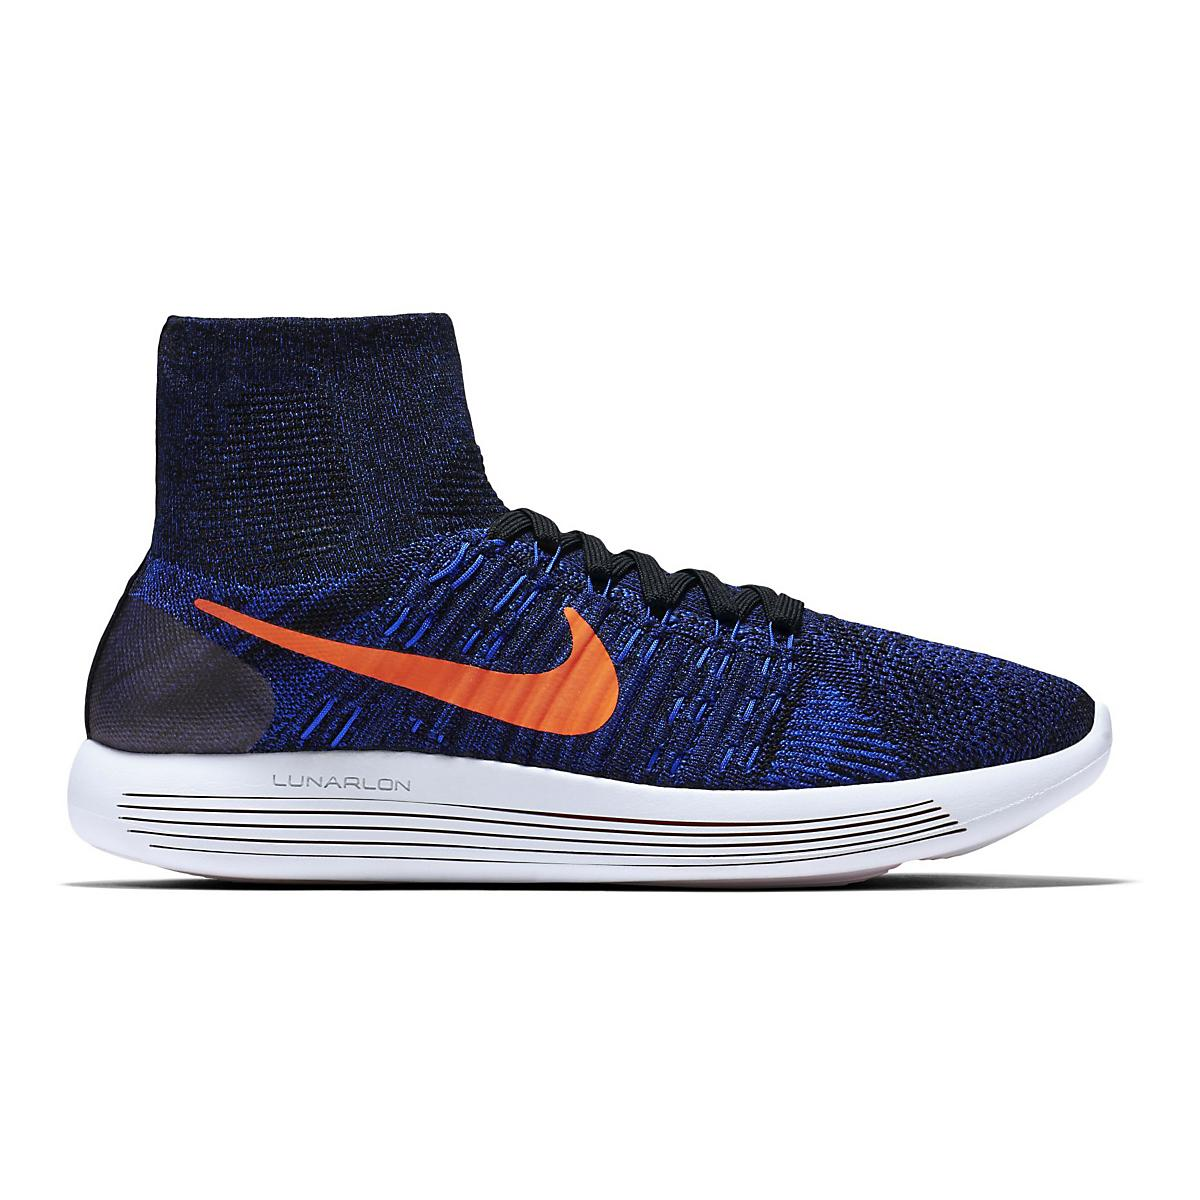 new product baac5 6a35d ... wholesale mens nike lunarepic flyknit running shoe at road runner sports  8cf01 08cca